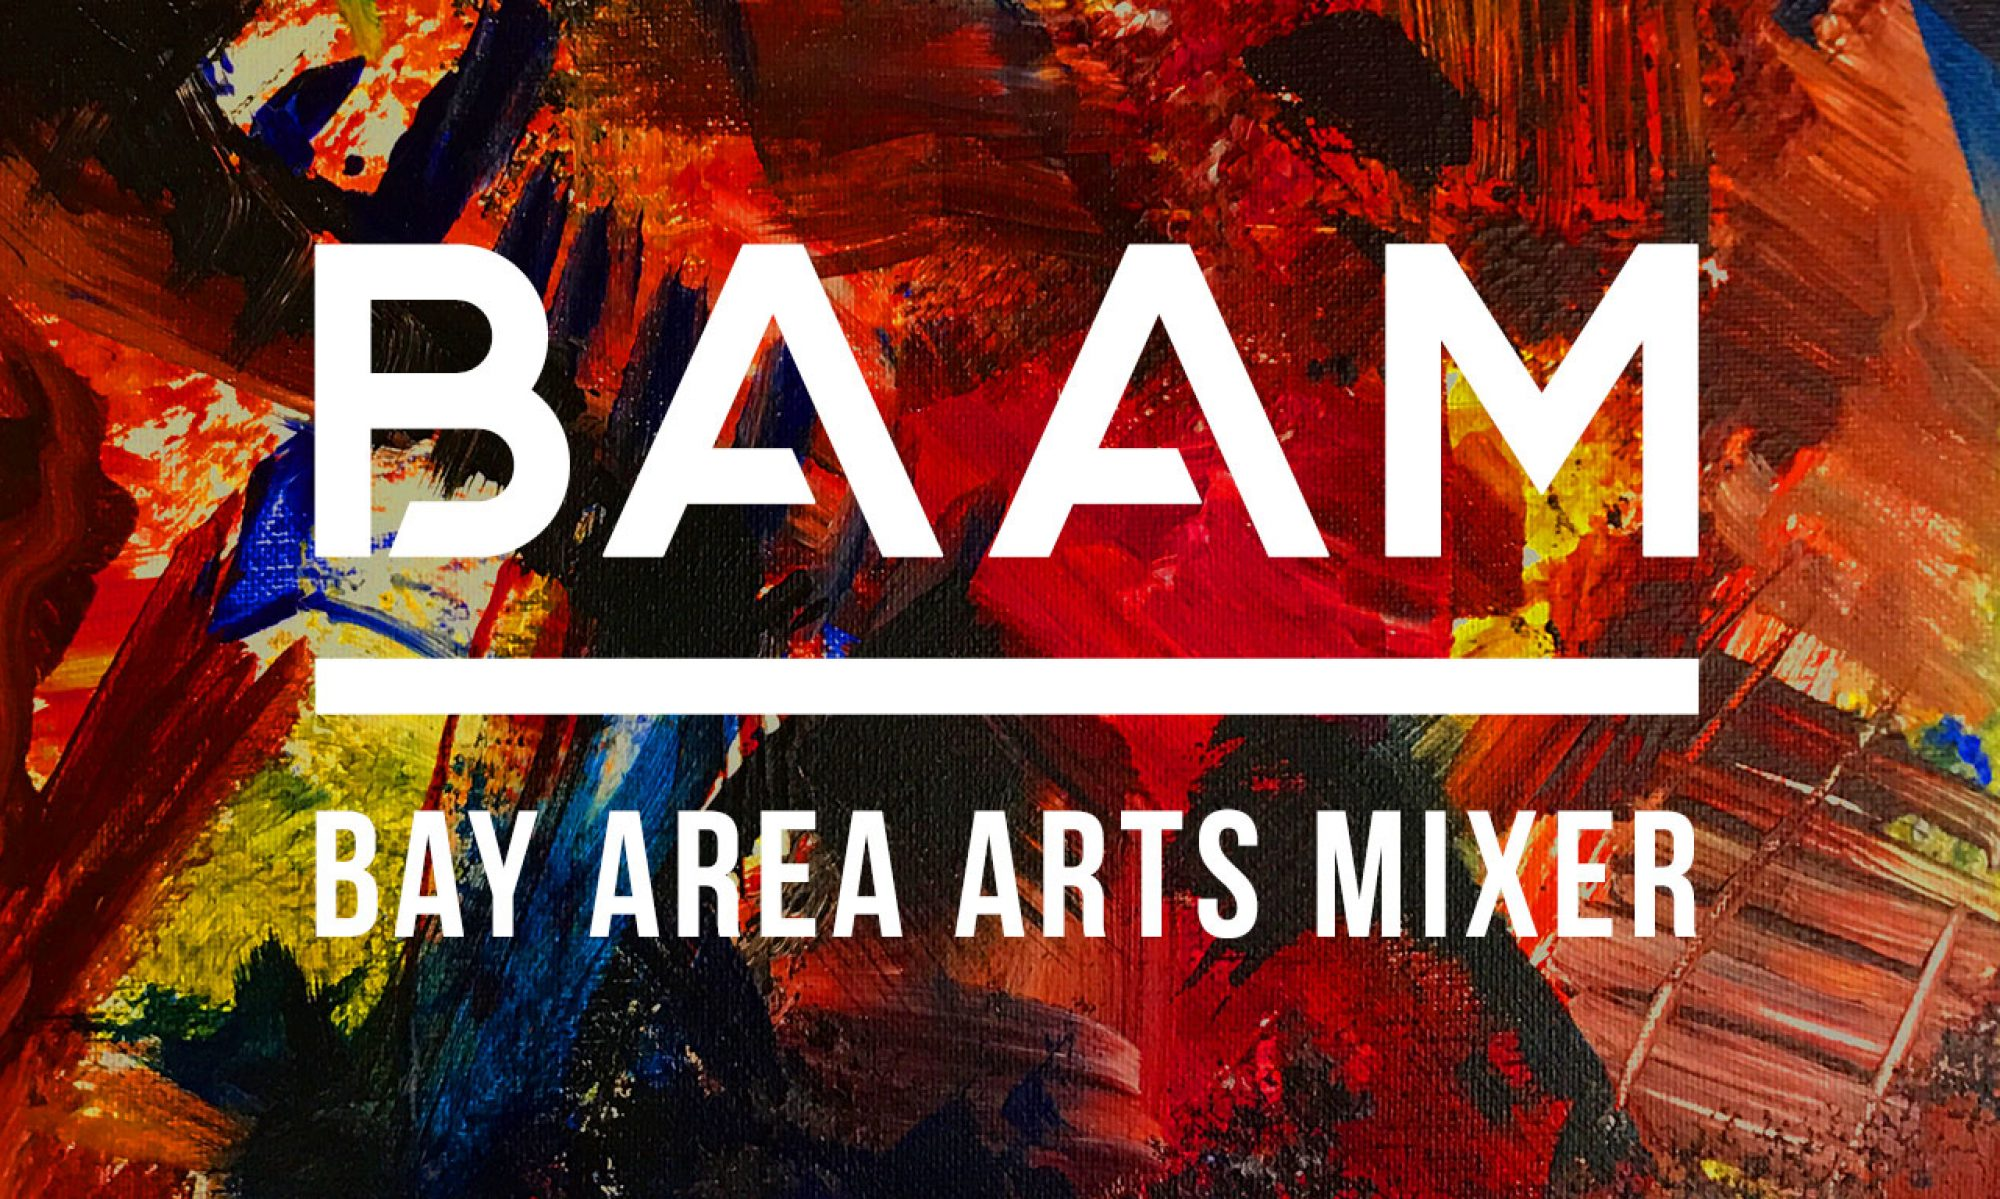 Bay Area Arts Mixer